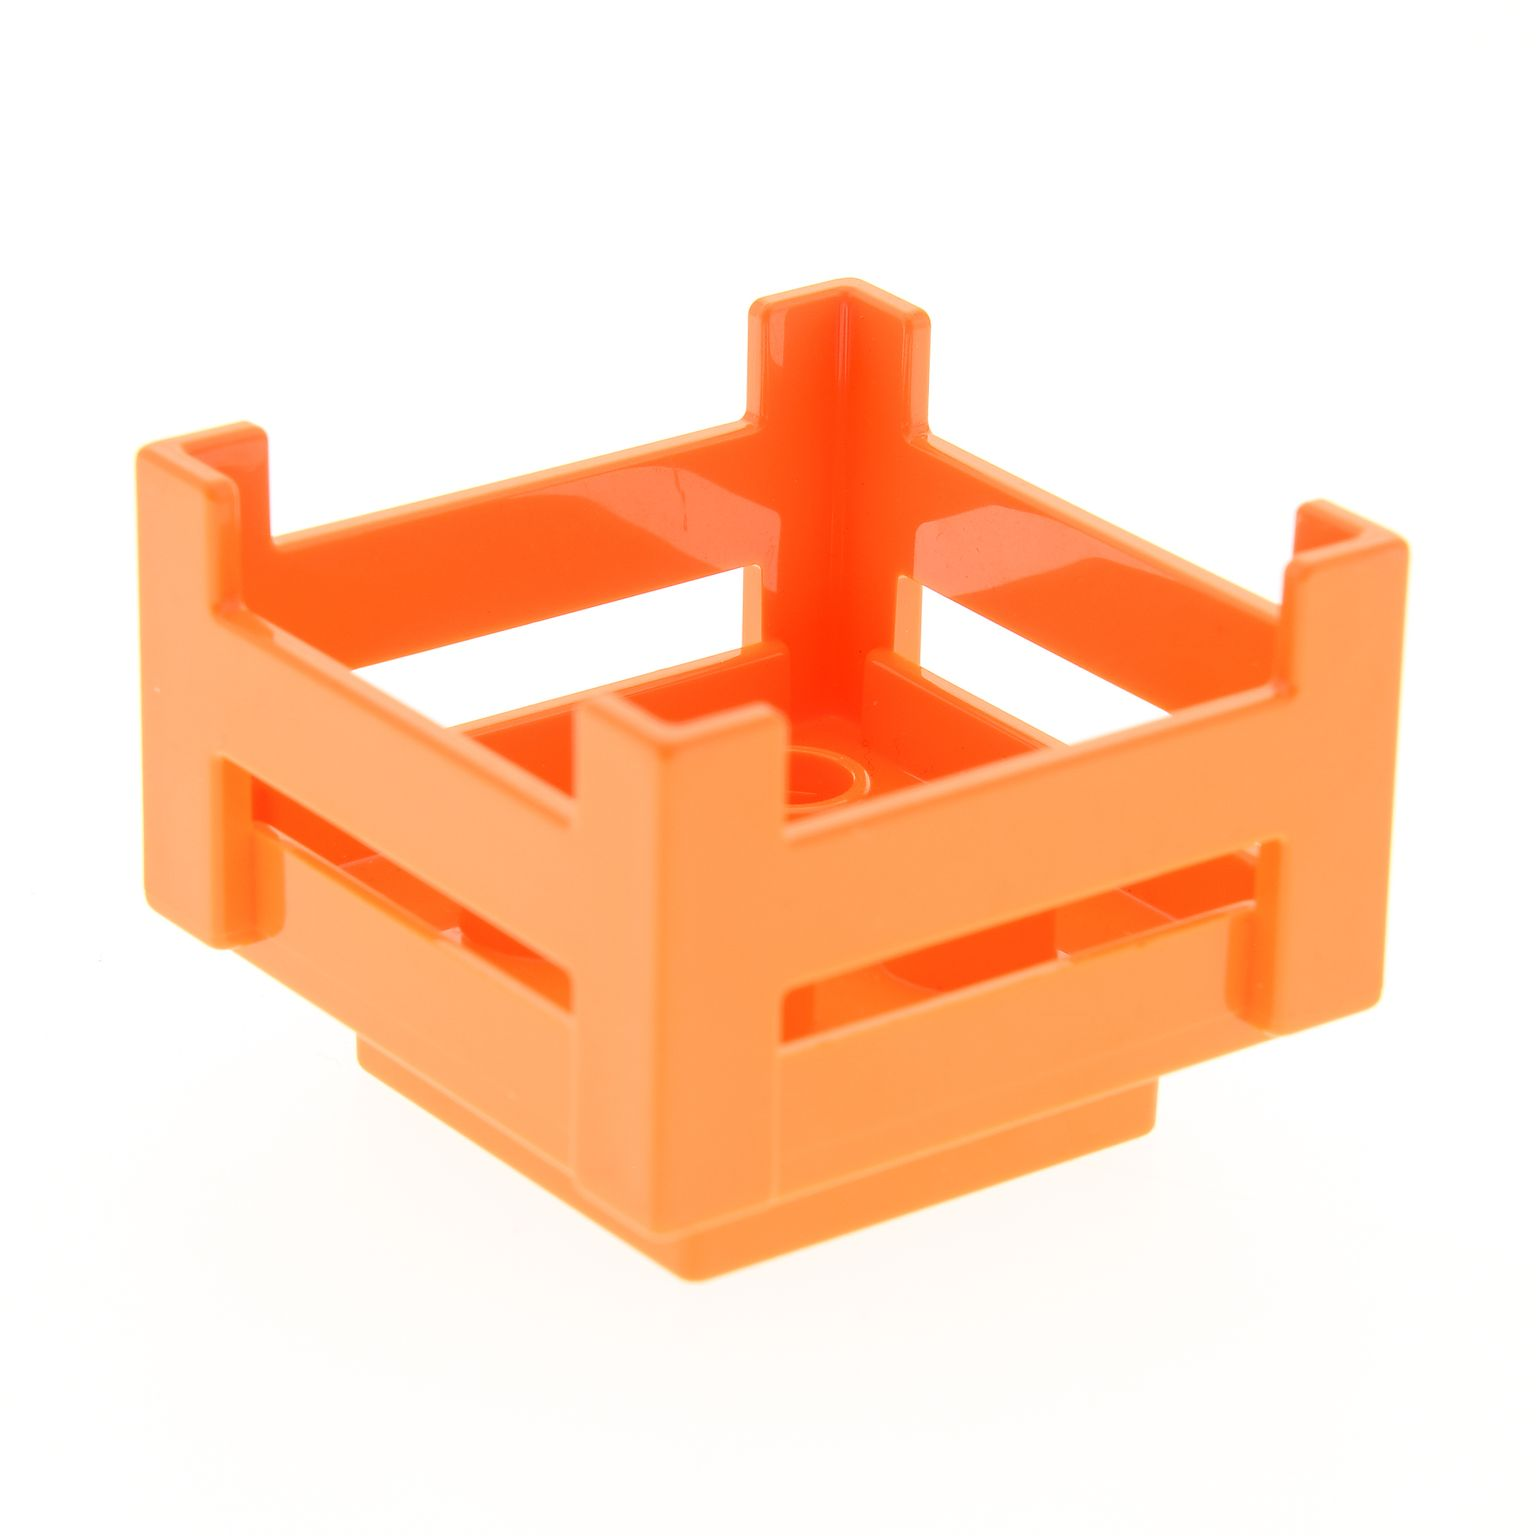 1 X Lego Duplo Mobel Kiste Orange Korb Container Puppenhaus Zoo